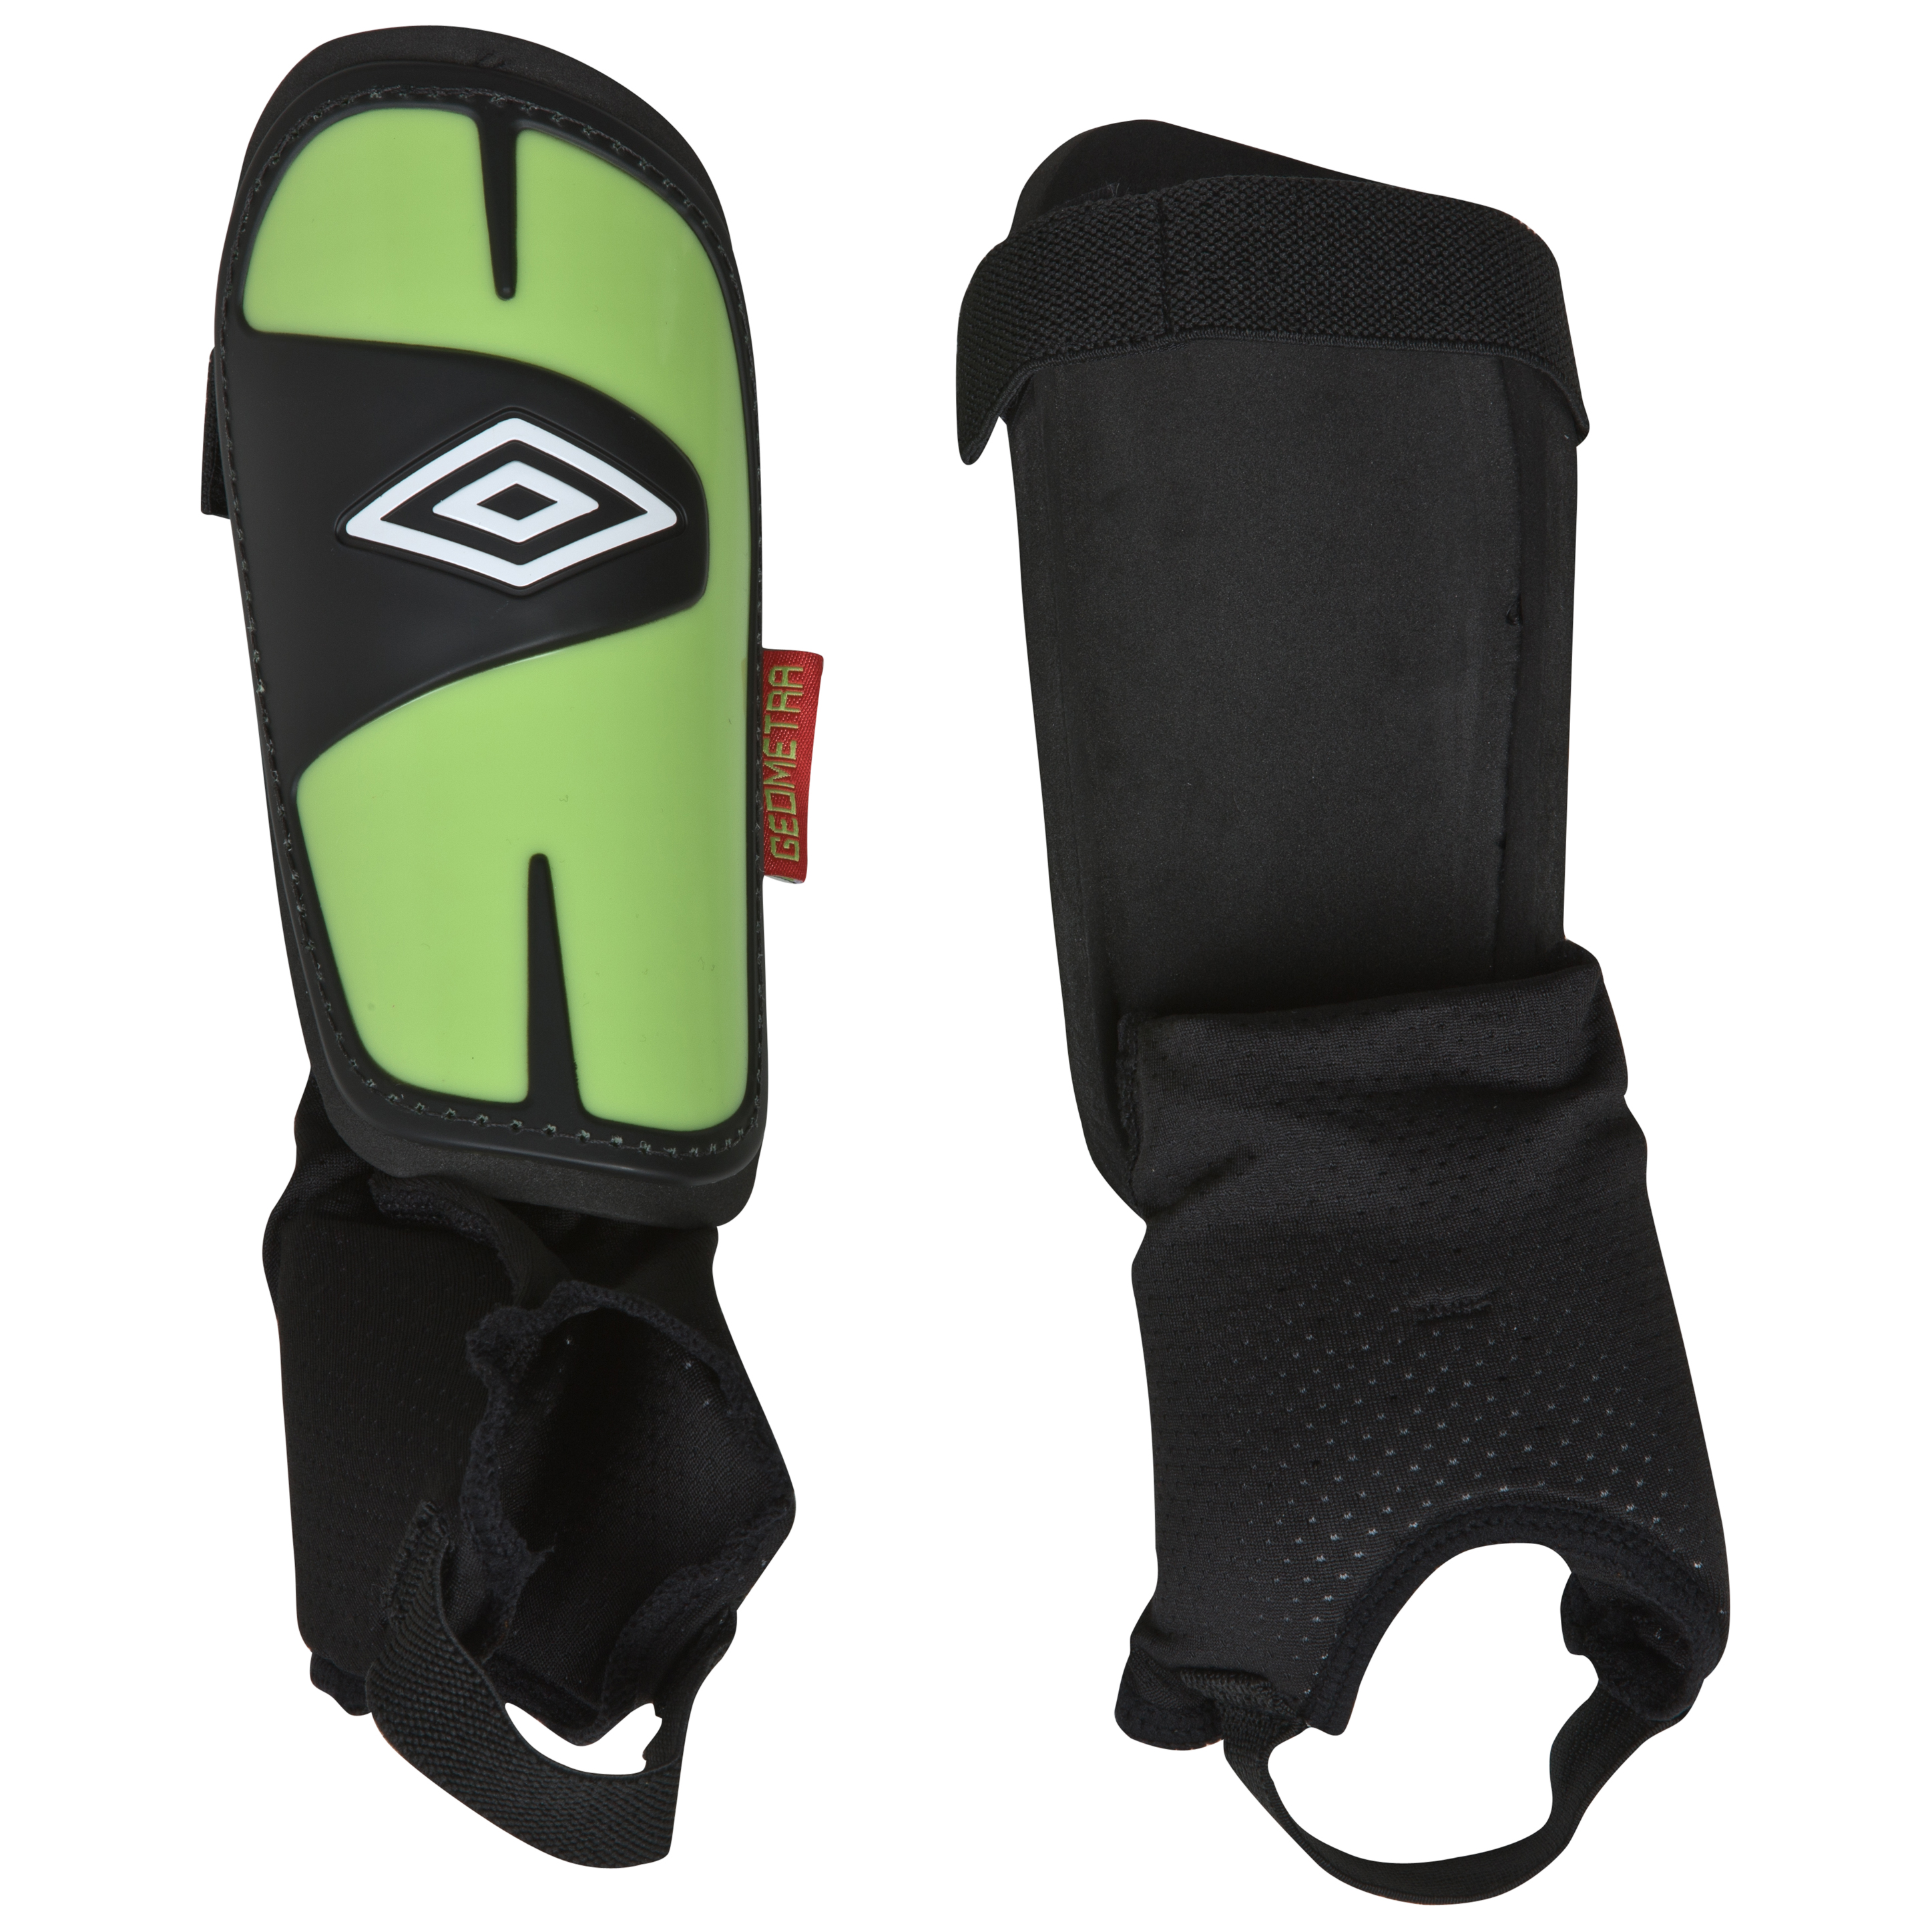 Umbro Geometra Cup Shin Pads - Black/White/Sharp Green/True Red - Kids